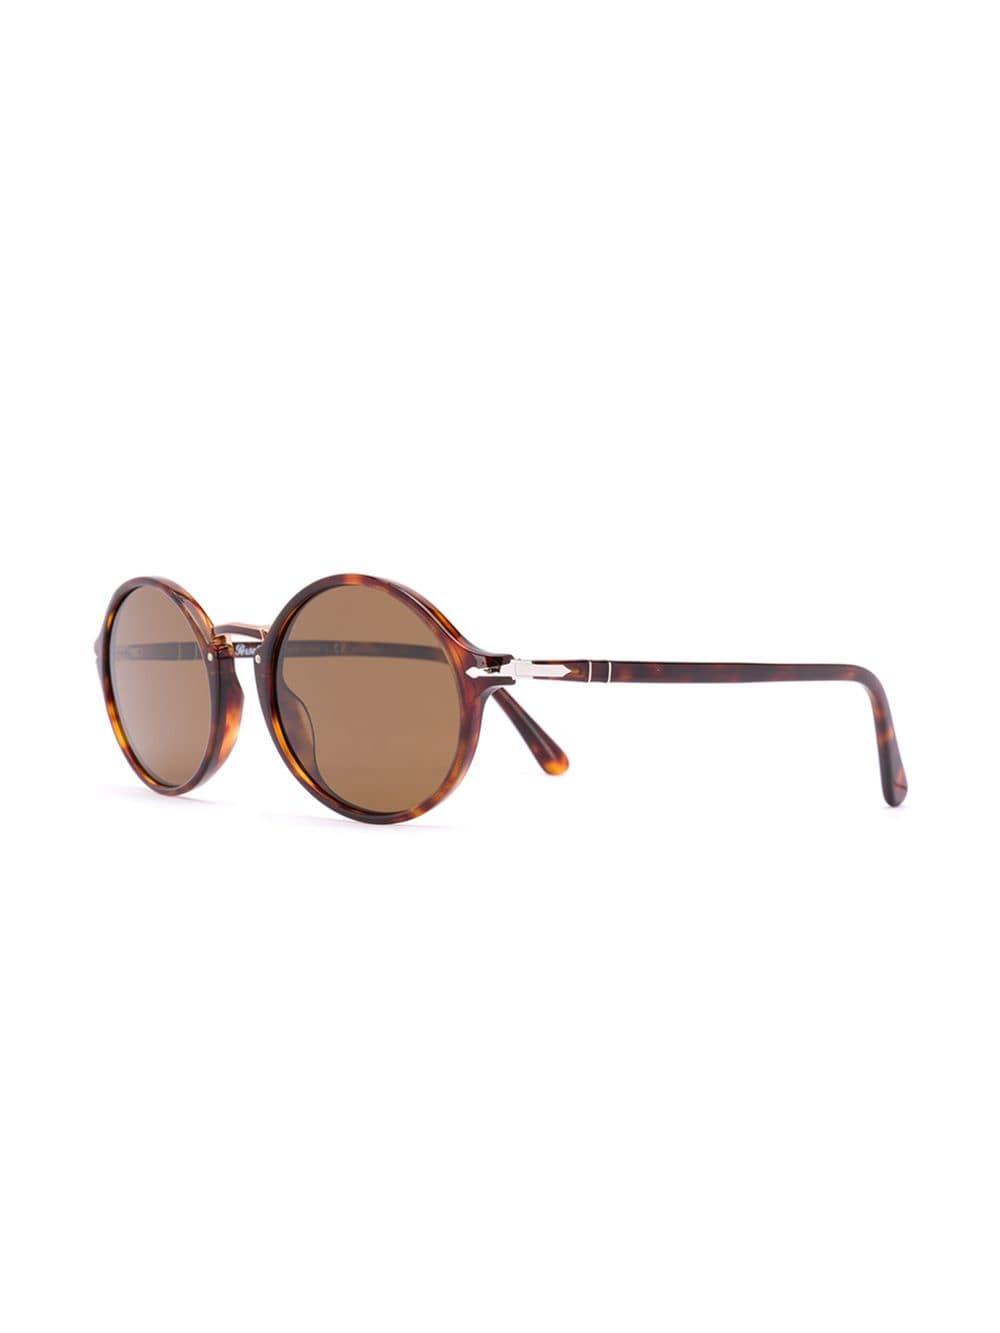 6f19776d553d8 Lyst - Persol Oval Frame Sunglasses in Brown